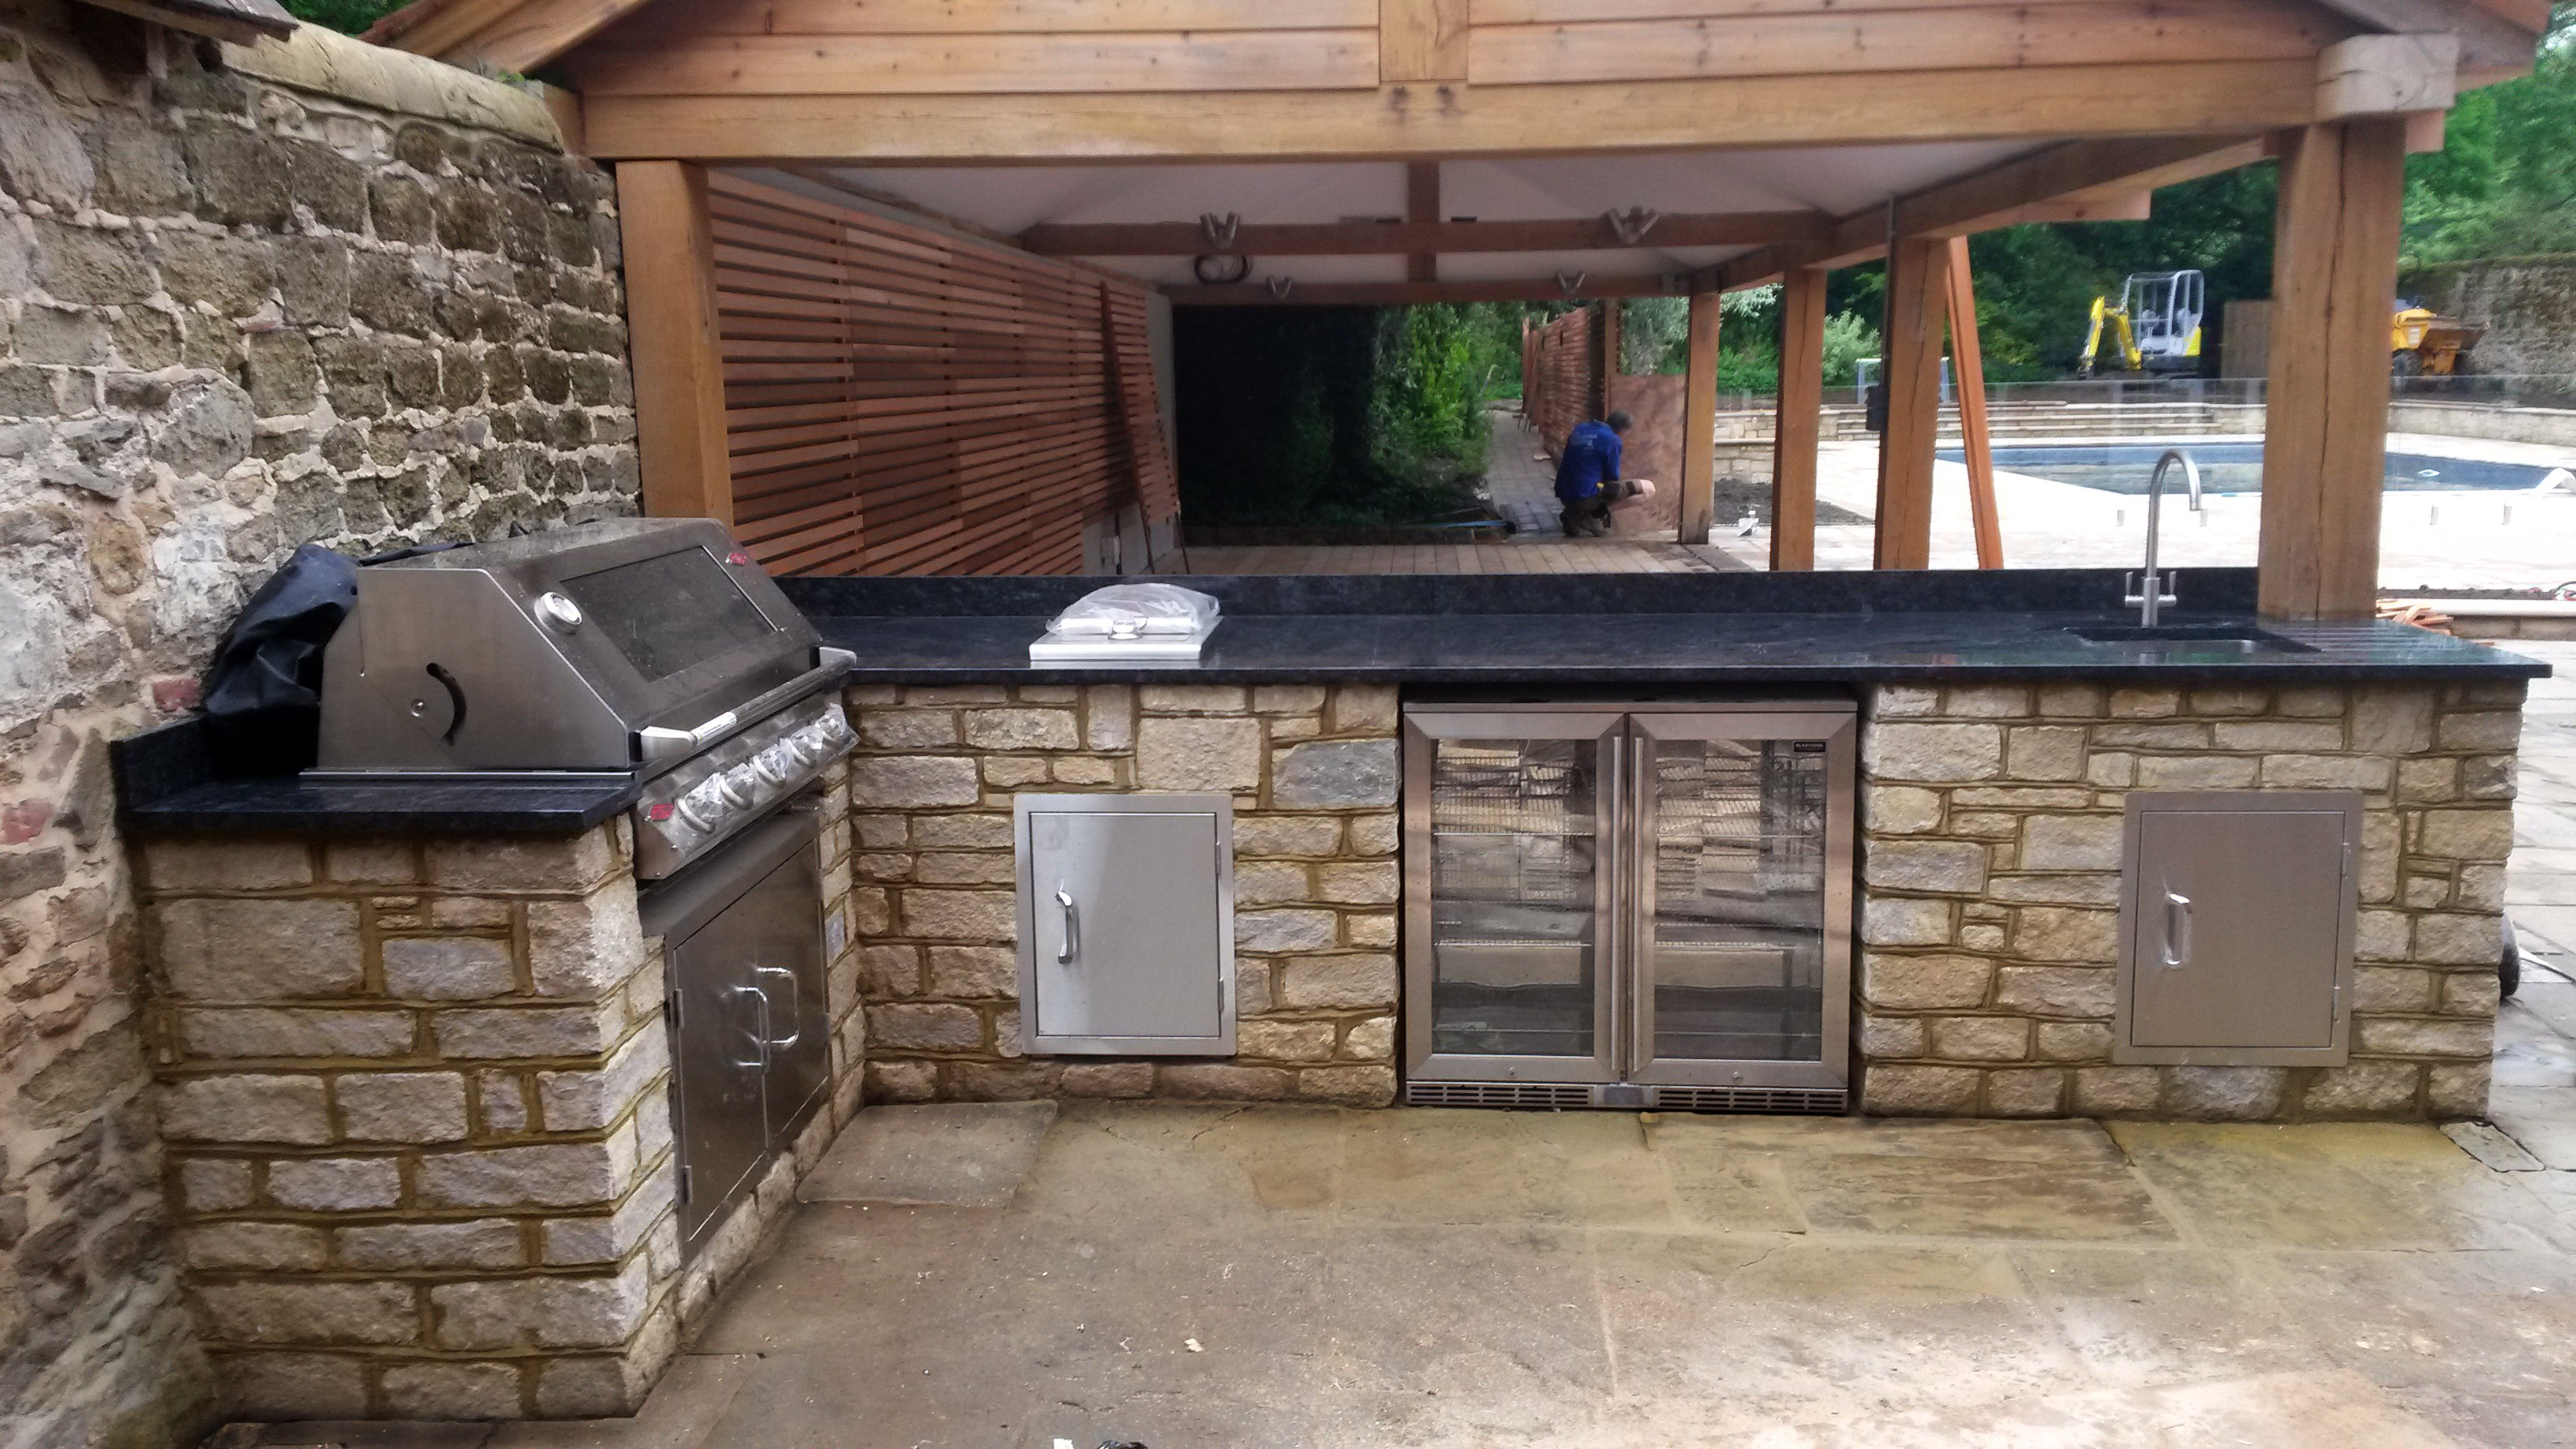 Purbeck stone cladding, outdoor kitchen Lynchmere, outdoor cooking